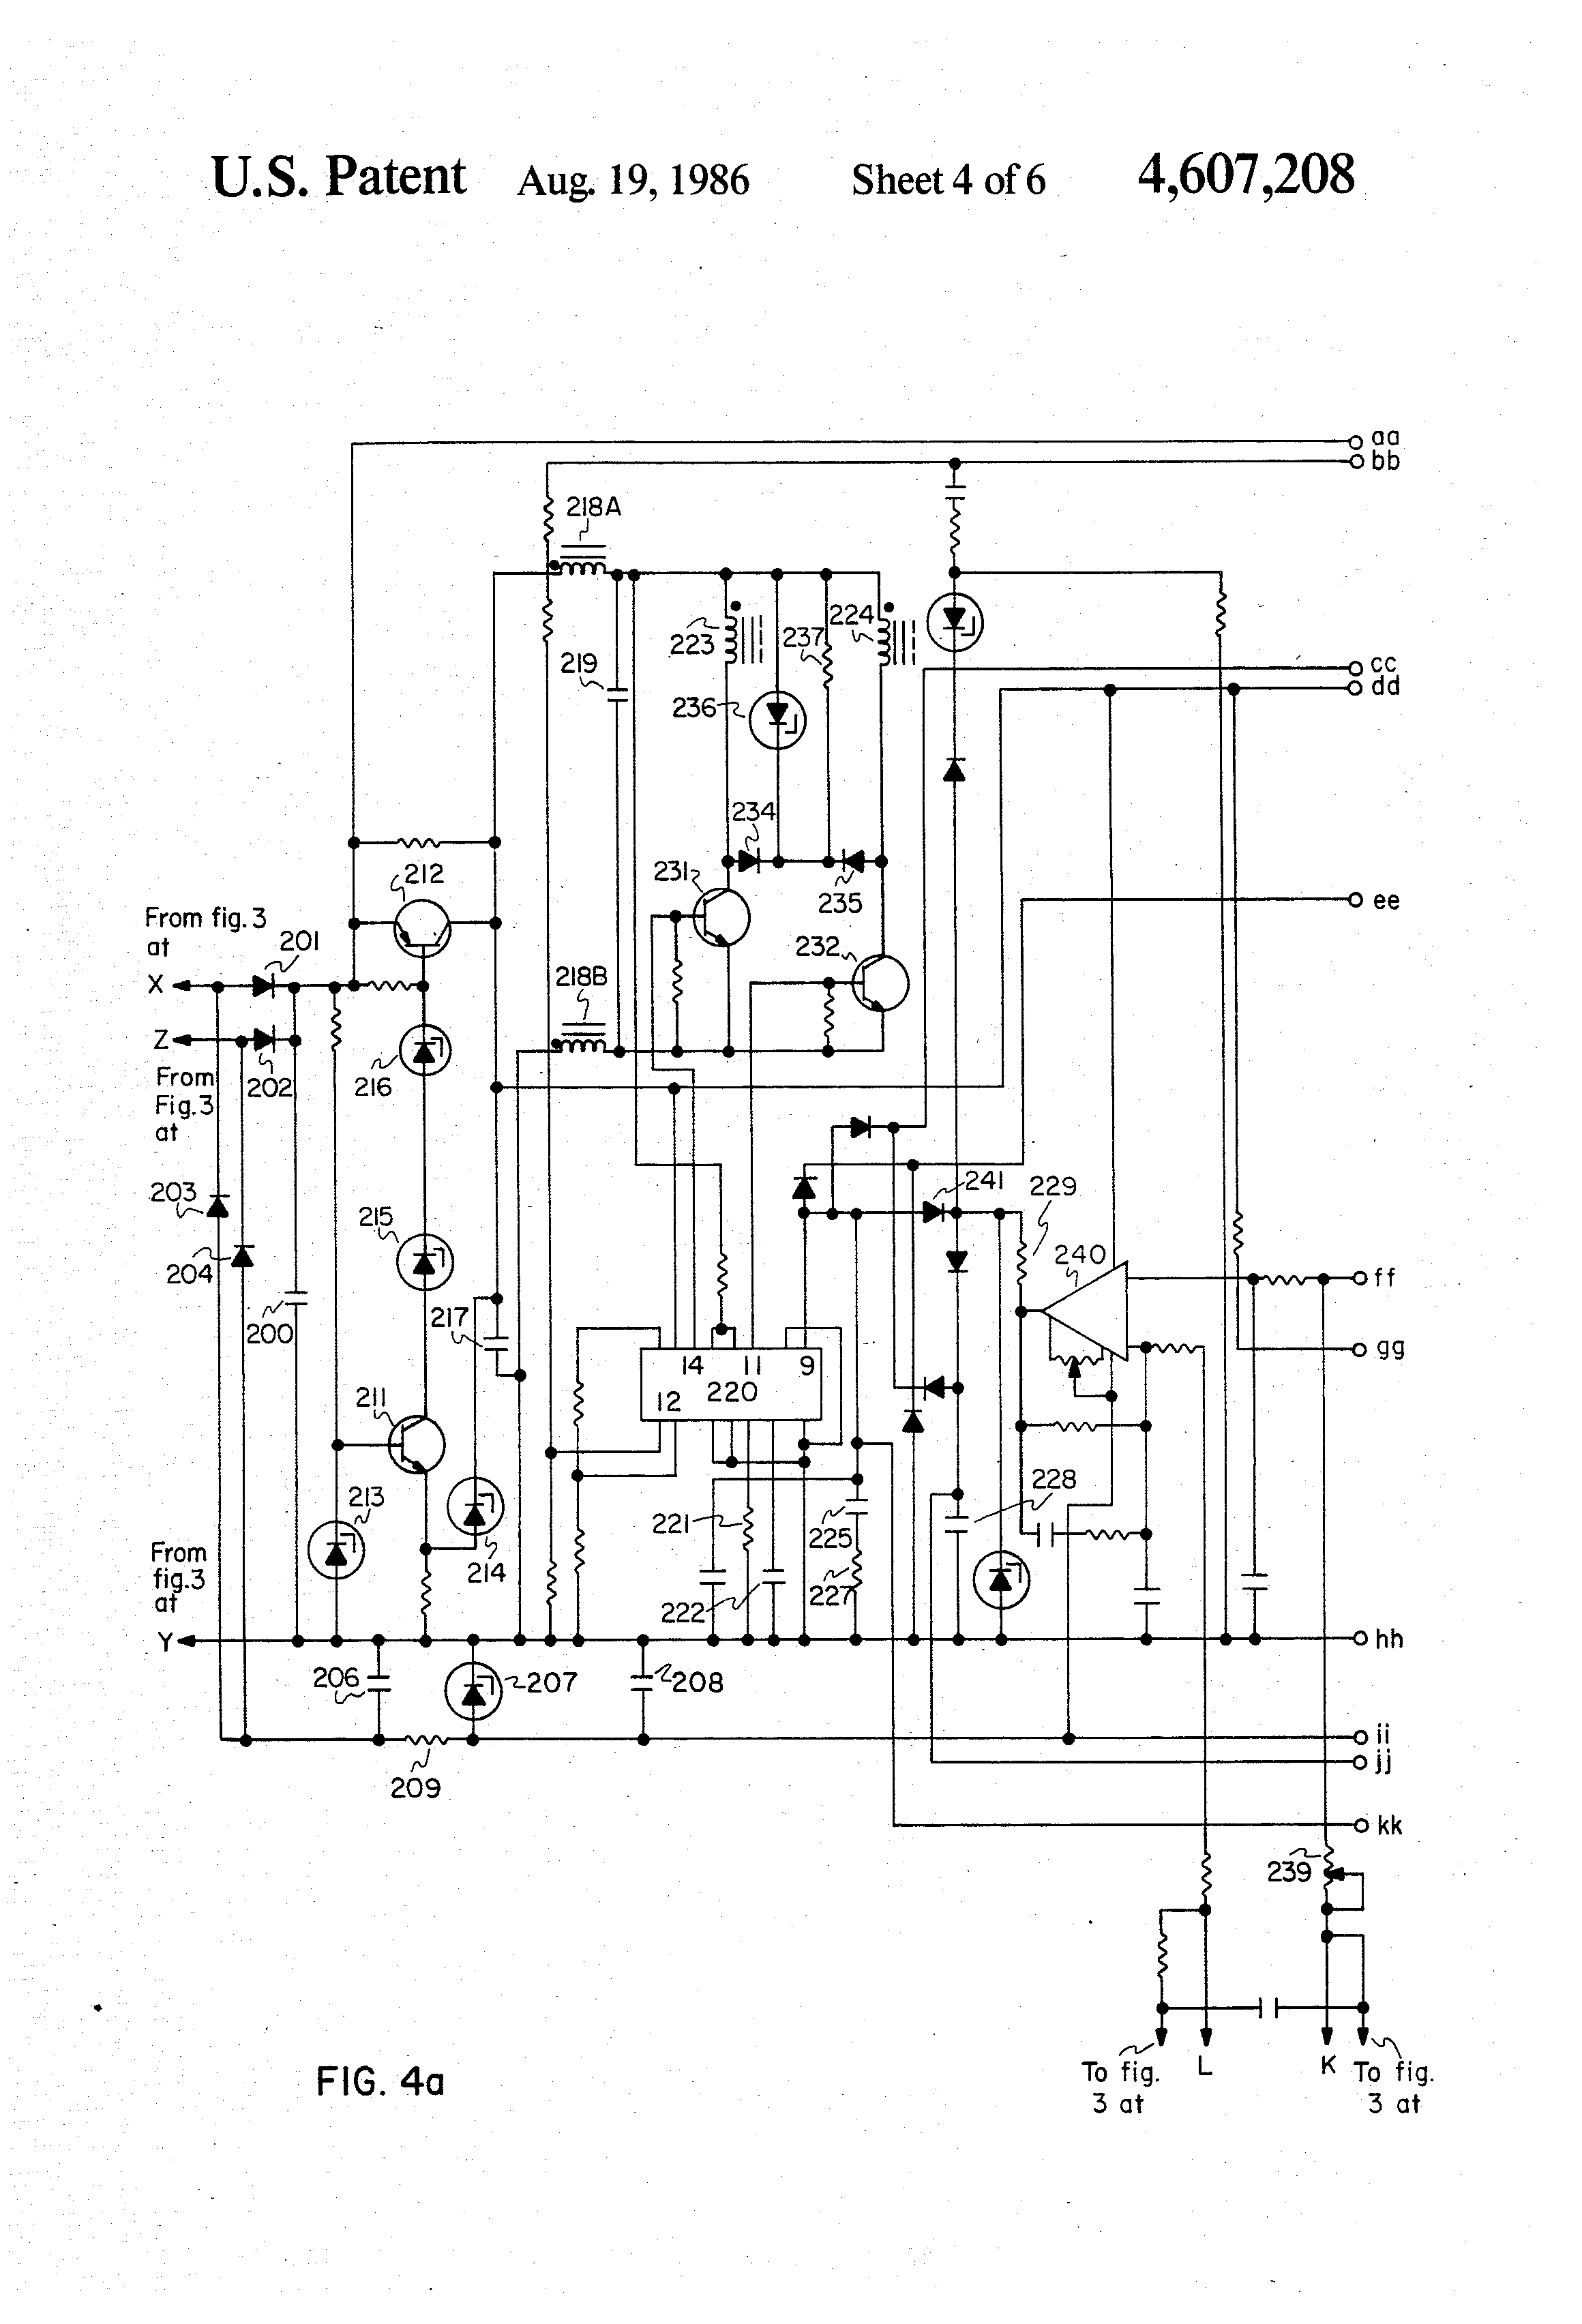 Schumacher Battery Charger Se 4225 Wiring Diagram 49 Die Hard Us4607208 4 Parts 4020 Best Electronic 2017 At